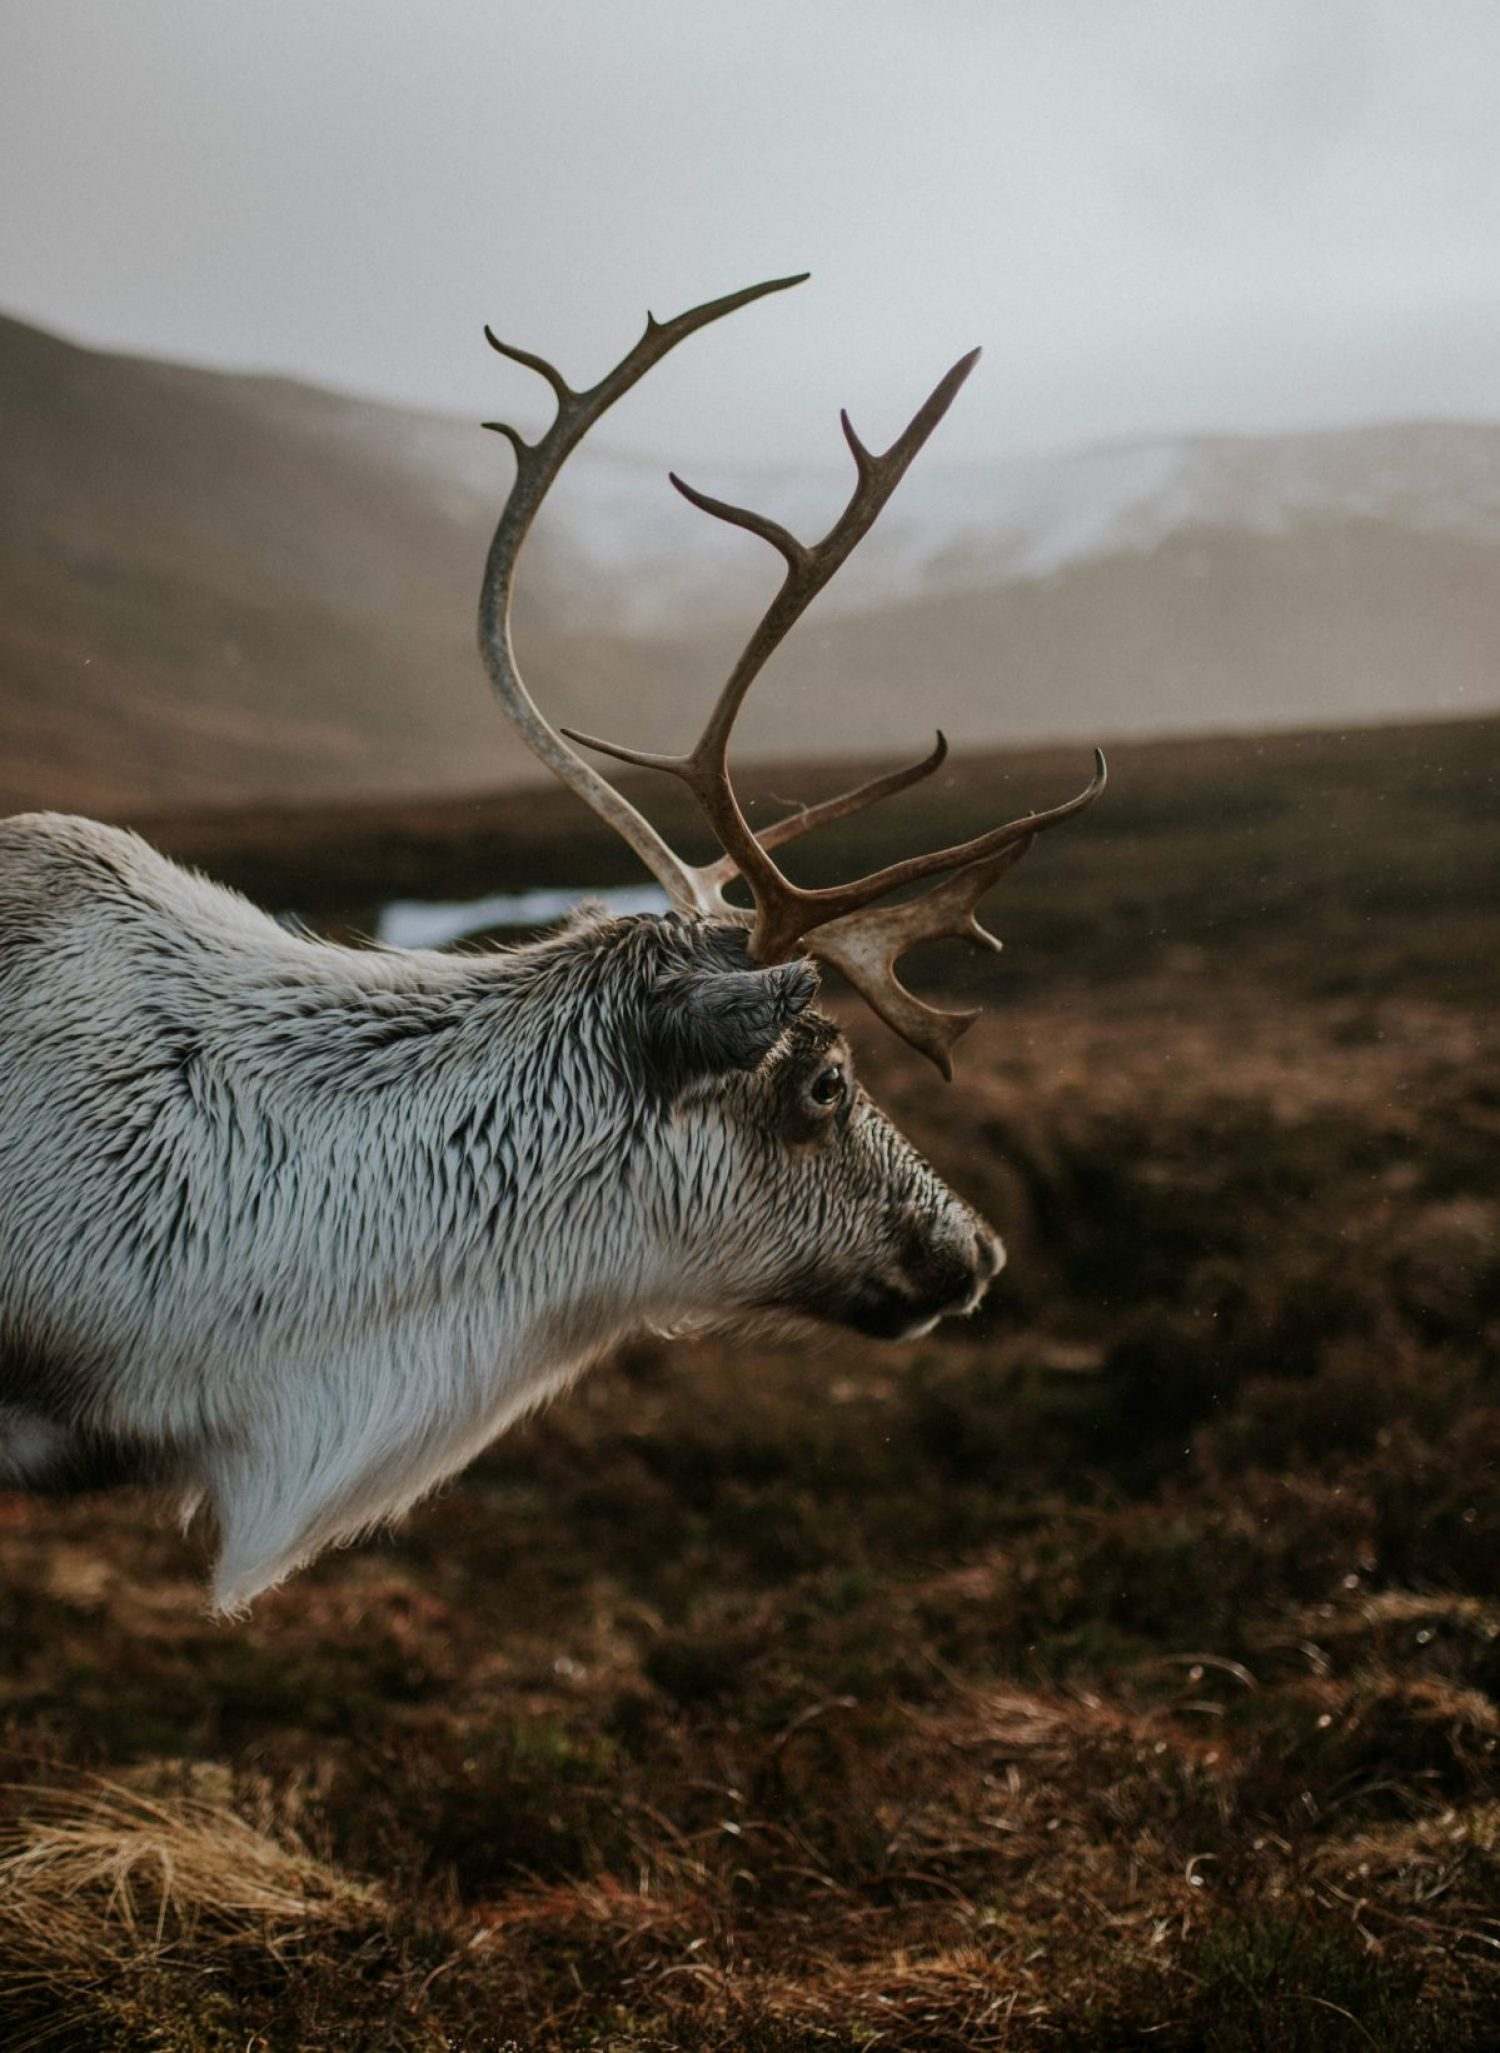 Reindeer are believed to be native to Scotland, but became extinct around 800 years ago due to over-hunting